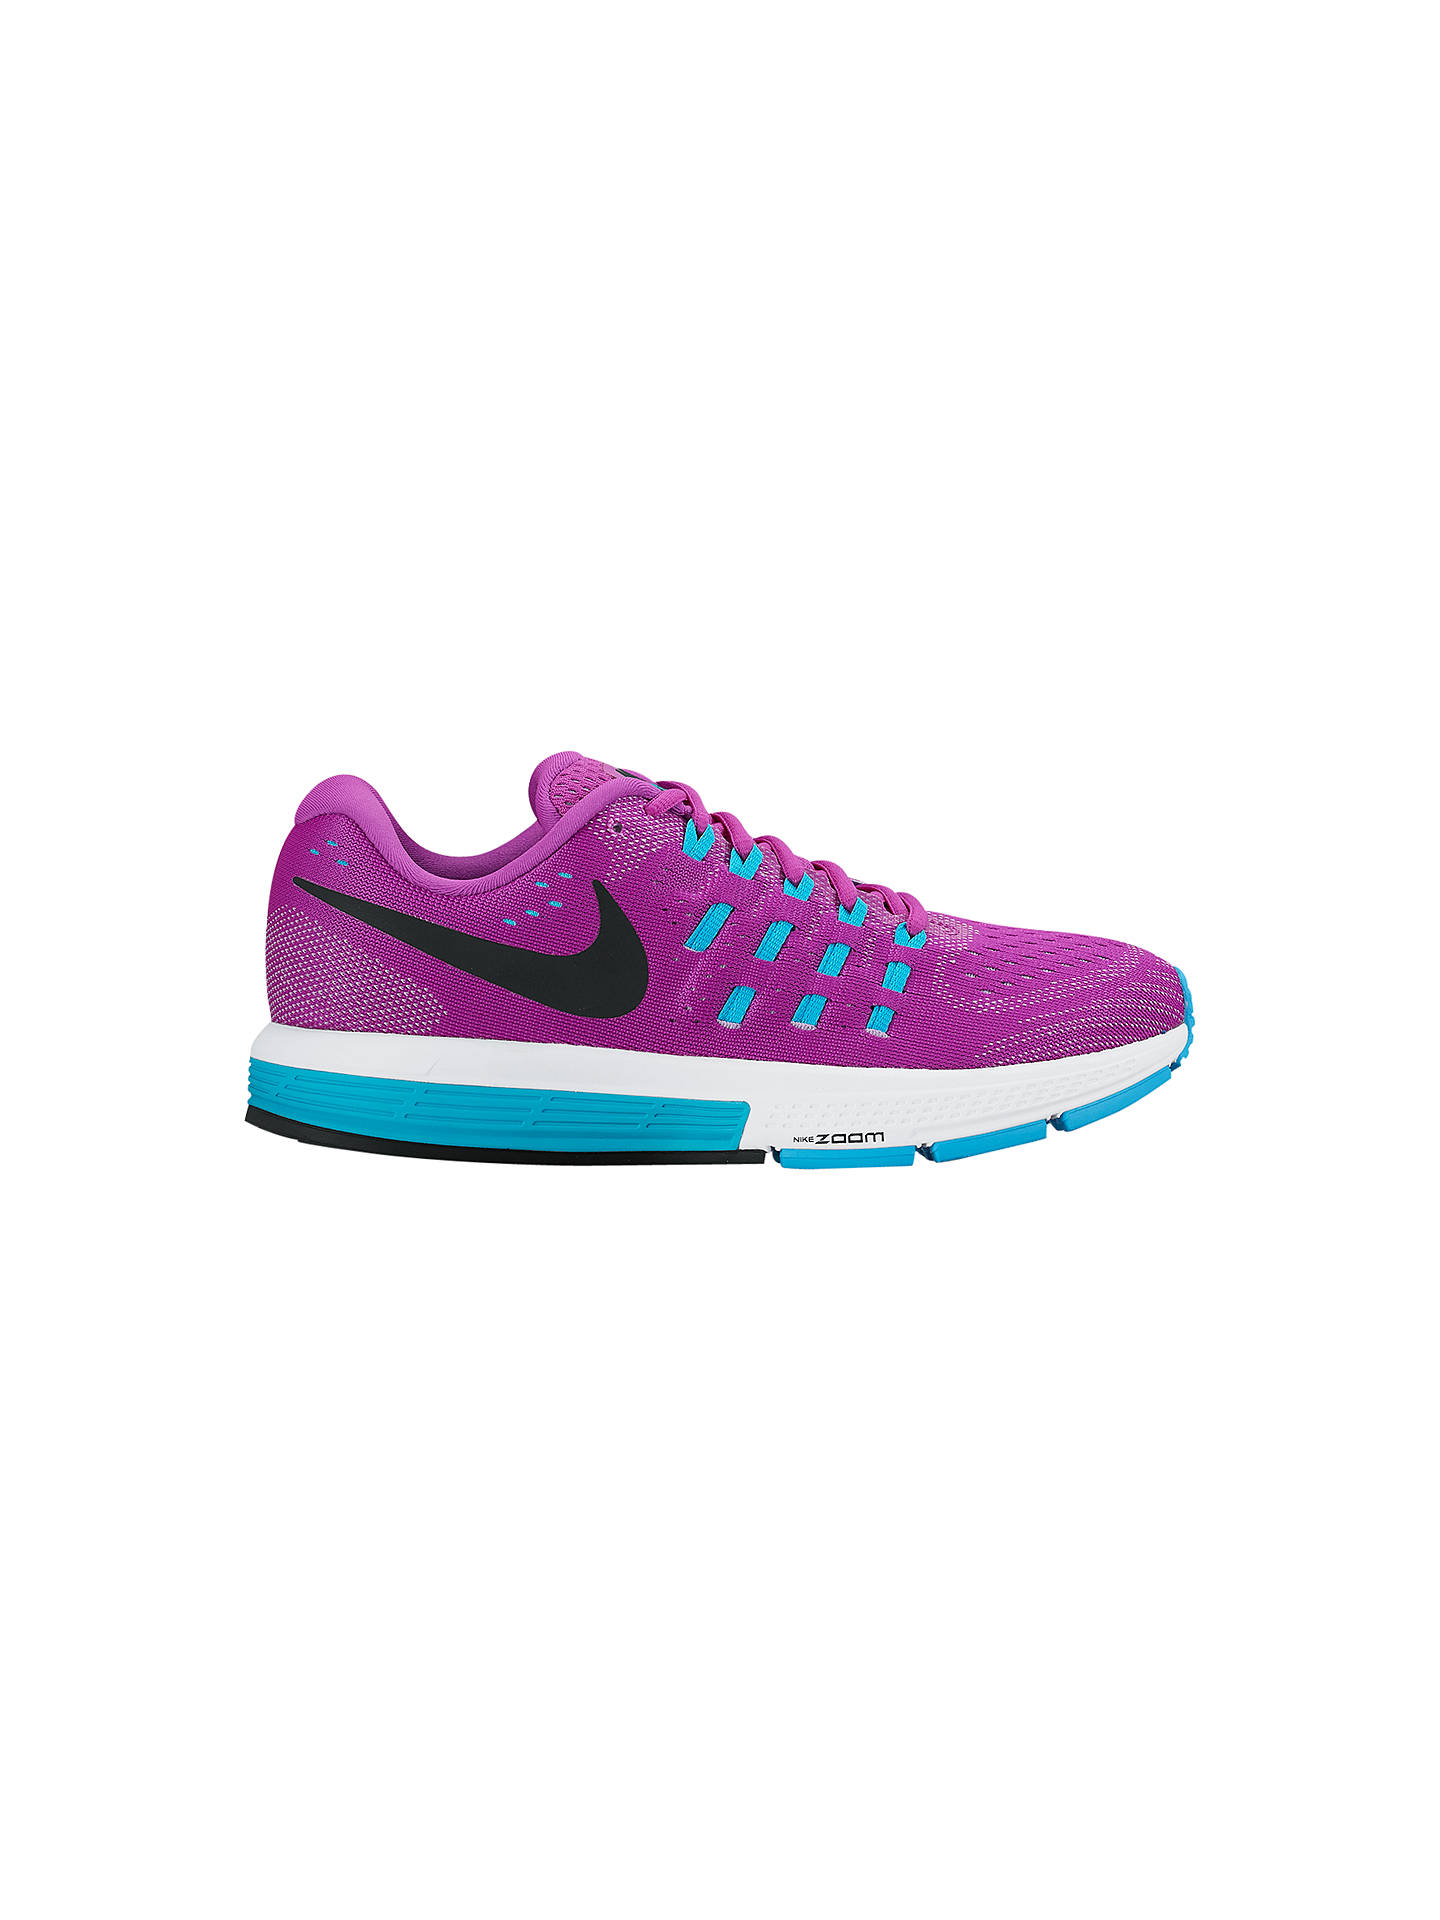 bc1d3ba0762 Buy Nike Air Zoom Vomero 11 Women s Running Shoes